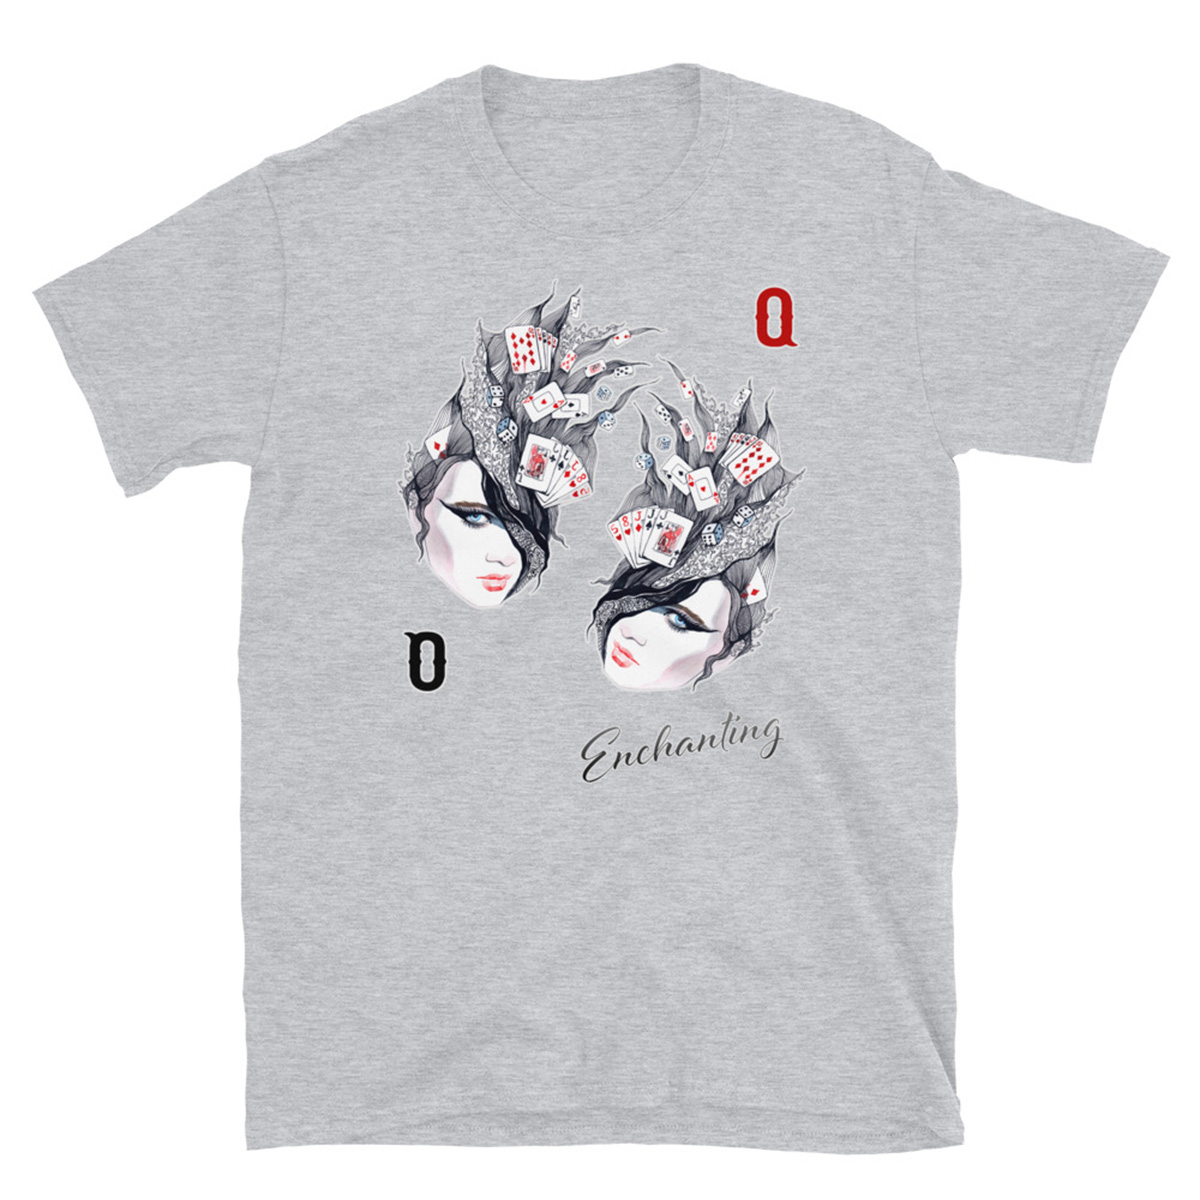 Enchanted Queen Poker T-Shirt - Sports Grey